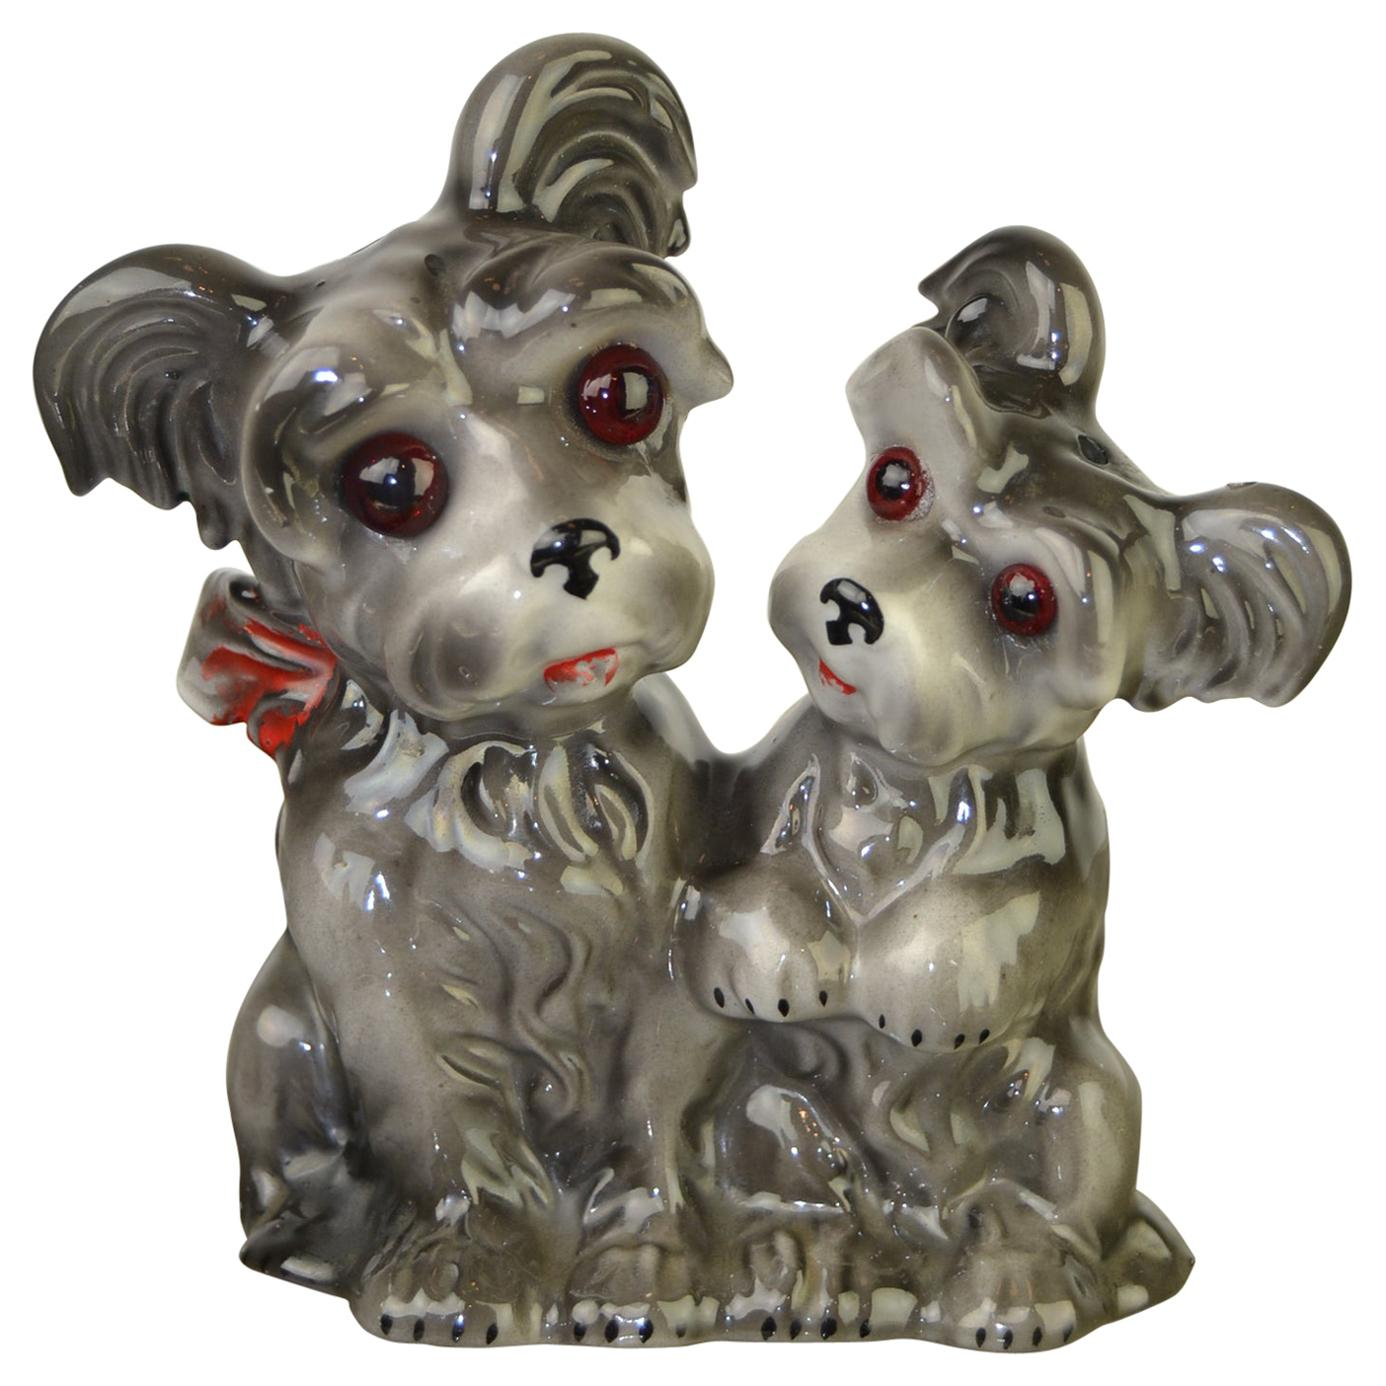 Porcelain Perfume Lamp with 2 Dogs, Germany, 1950s